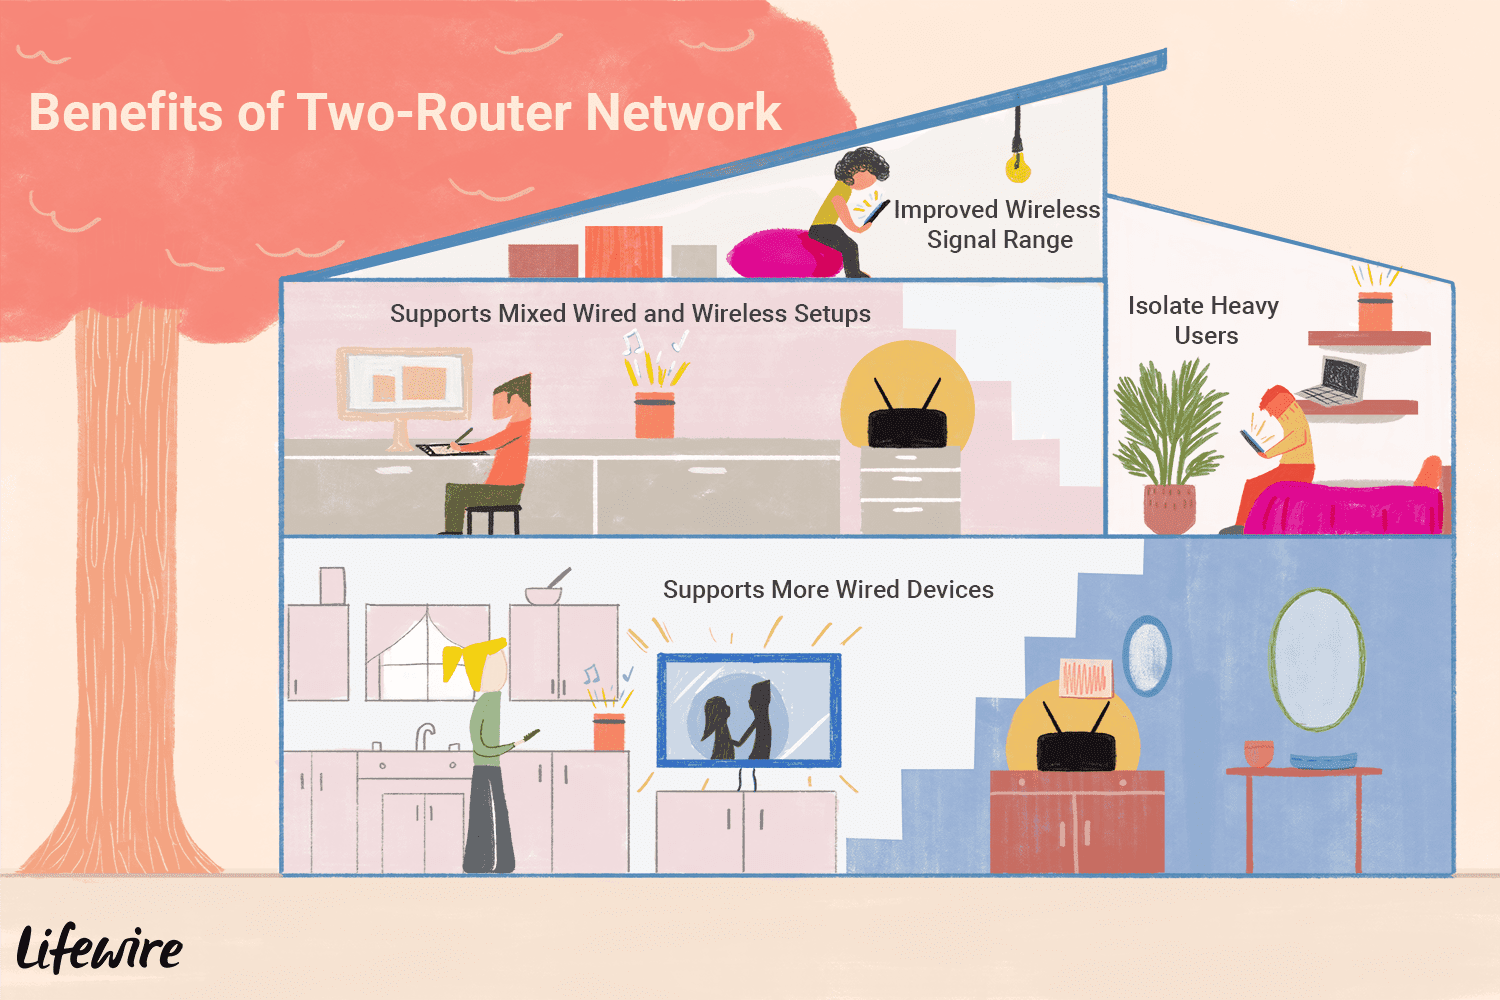 can two routers be used on the same home network 818064 final 5c4a4a9746e0fb000185b55f